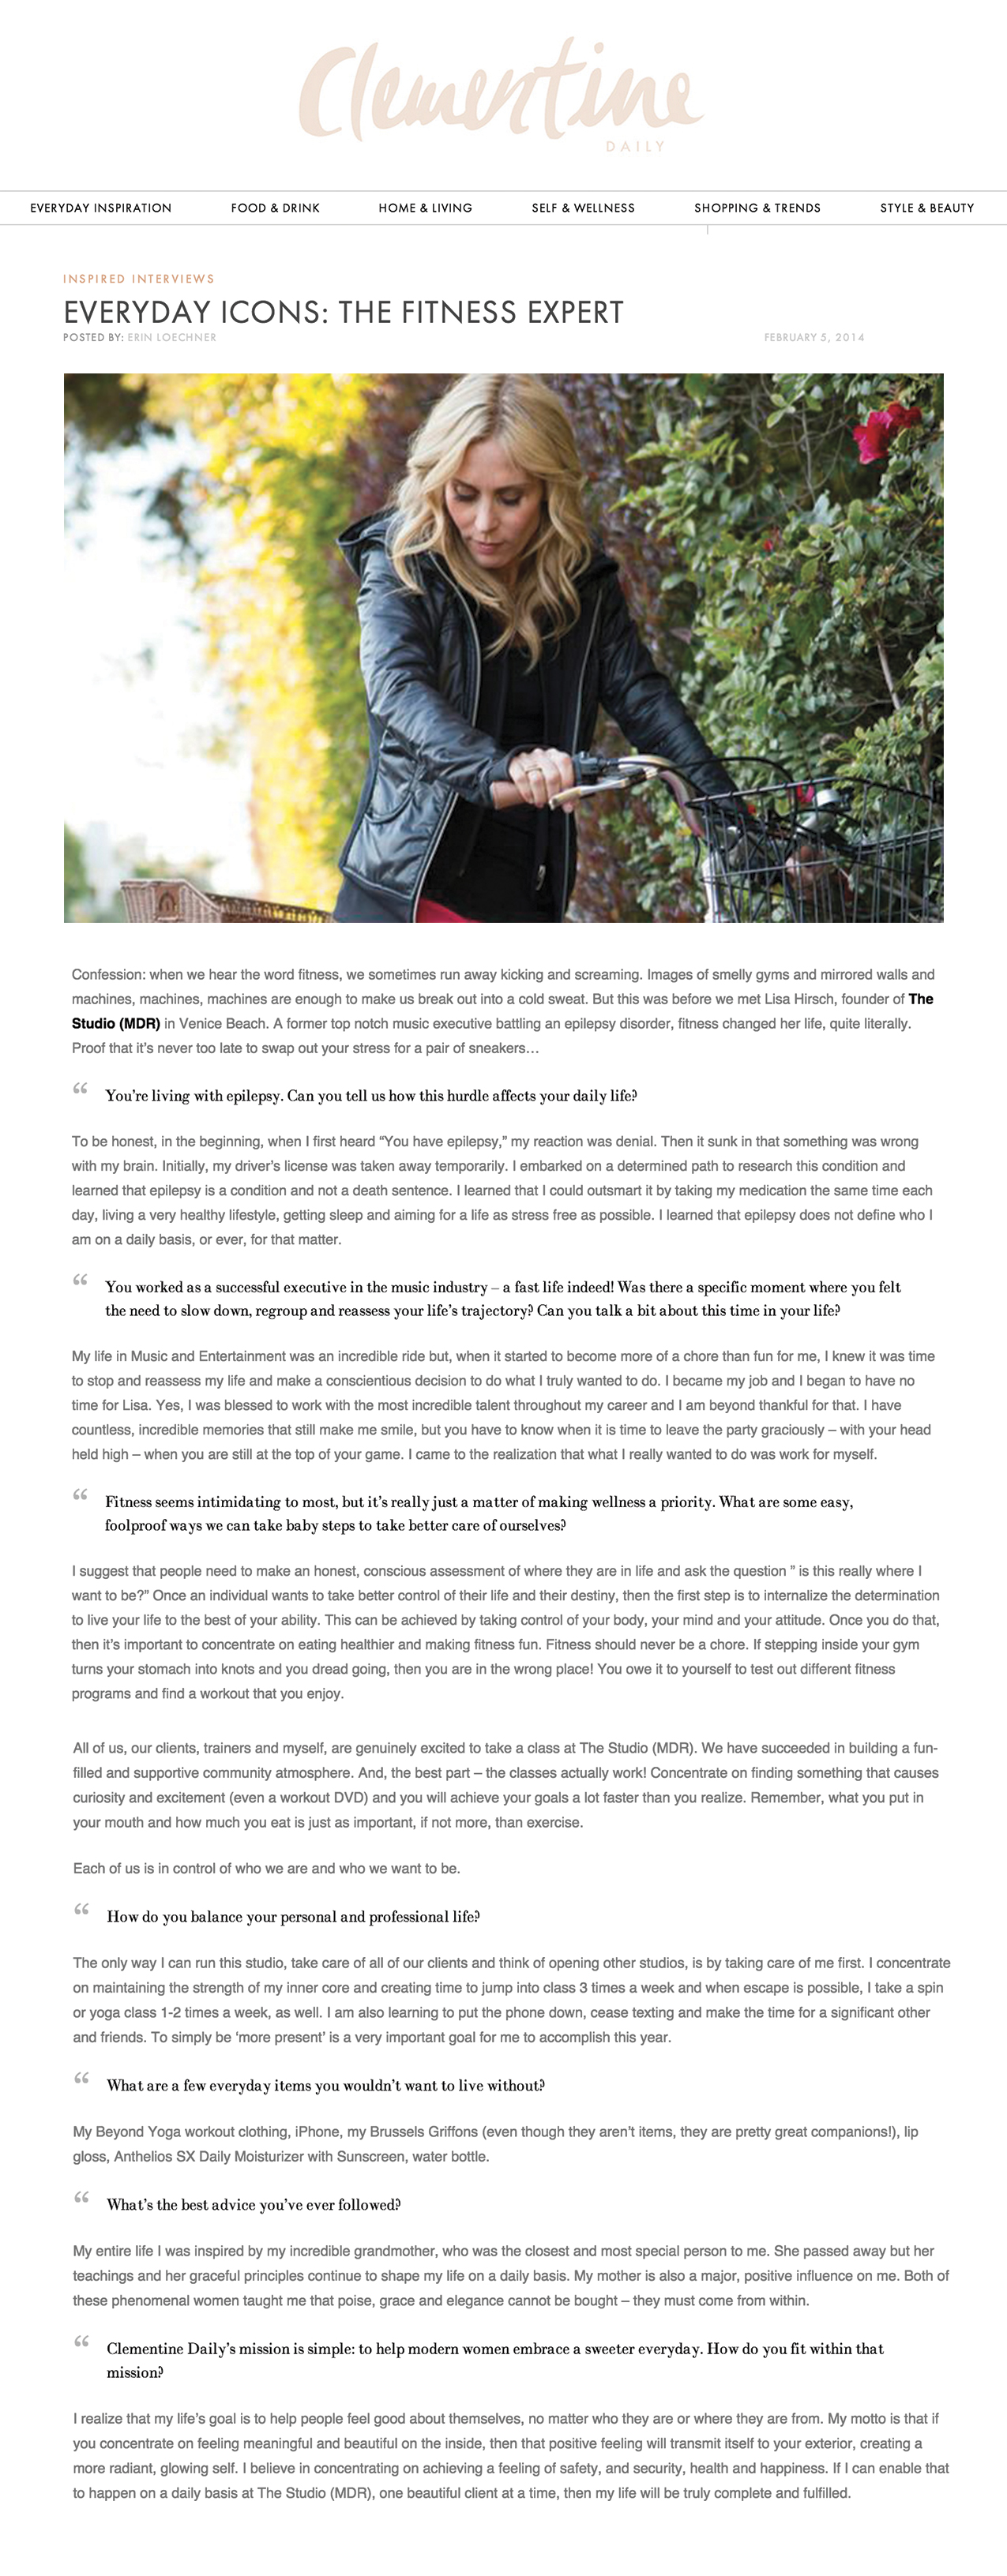 Clementine article, Feb 14